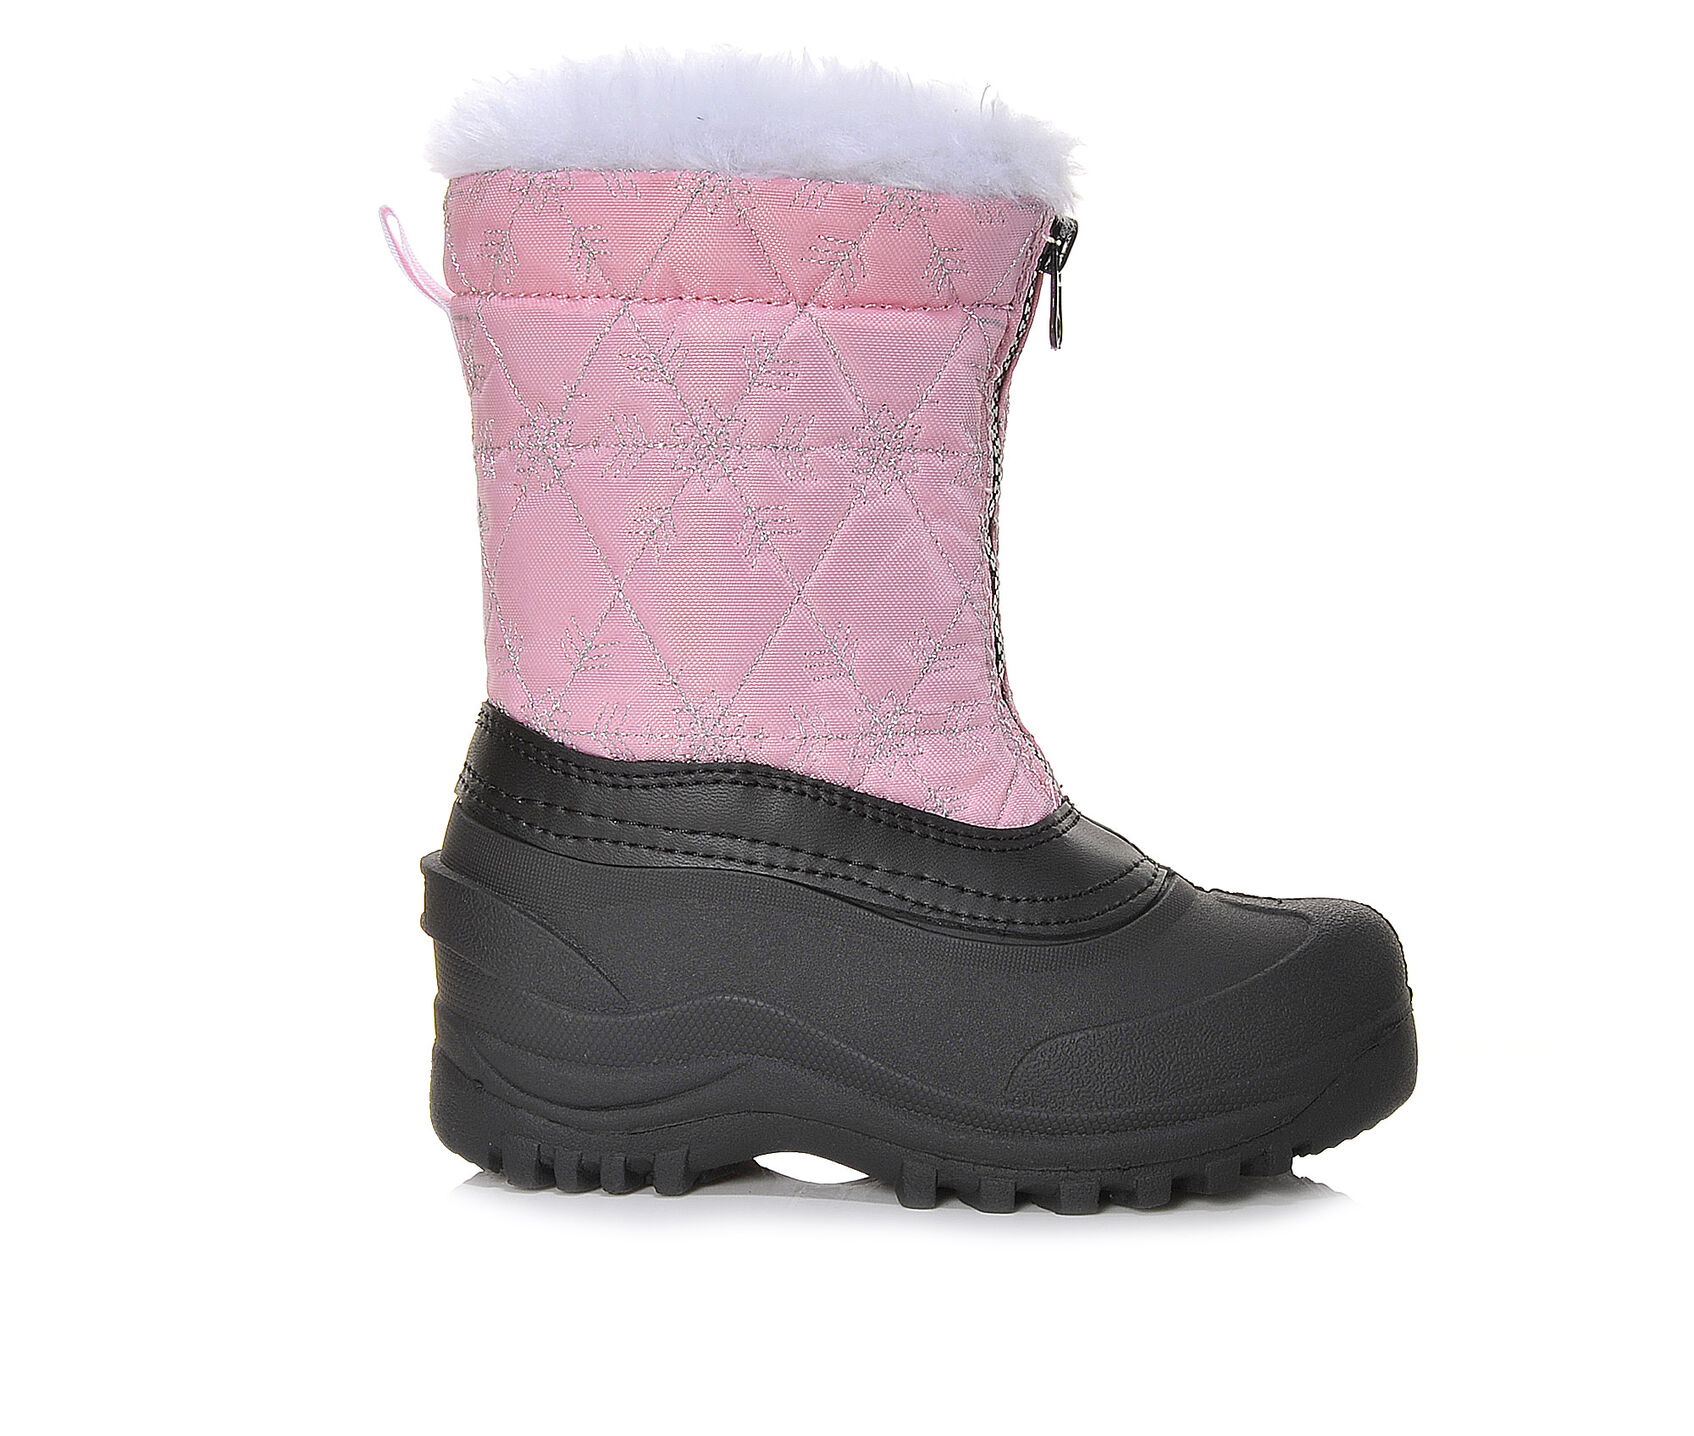 itasca girls ⚭@@ top_1_item_online @@⚭ toddler girls itasca 153 snow scamp boots 12 by elijah stokes best offer, with hundreds of content layouts, coupon online search 2018 is the least complicated issue.